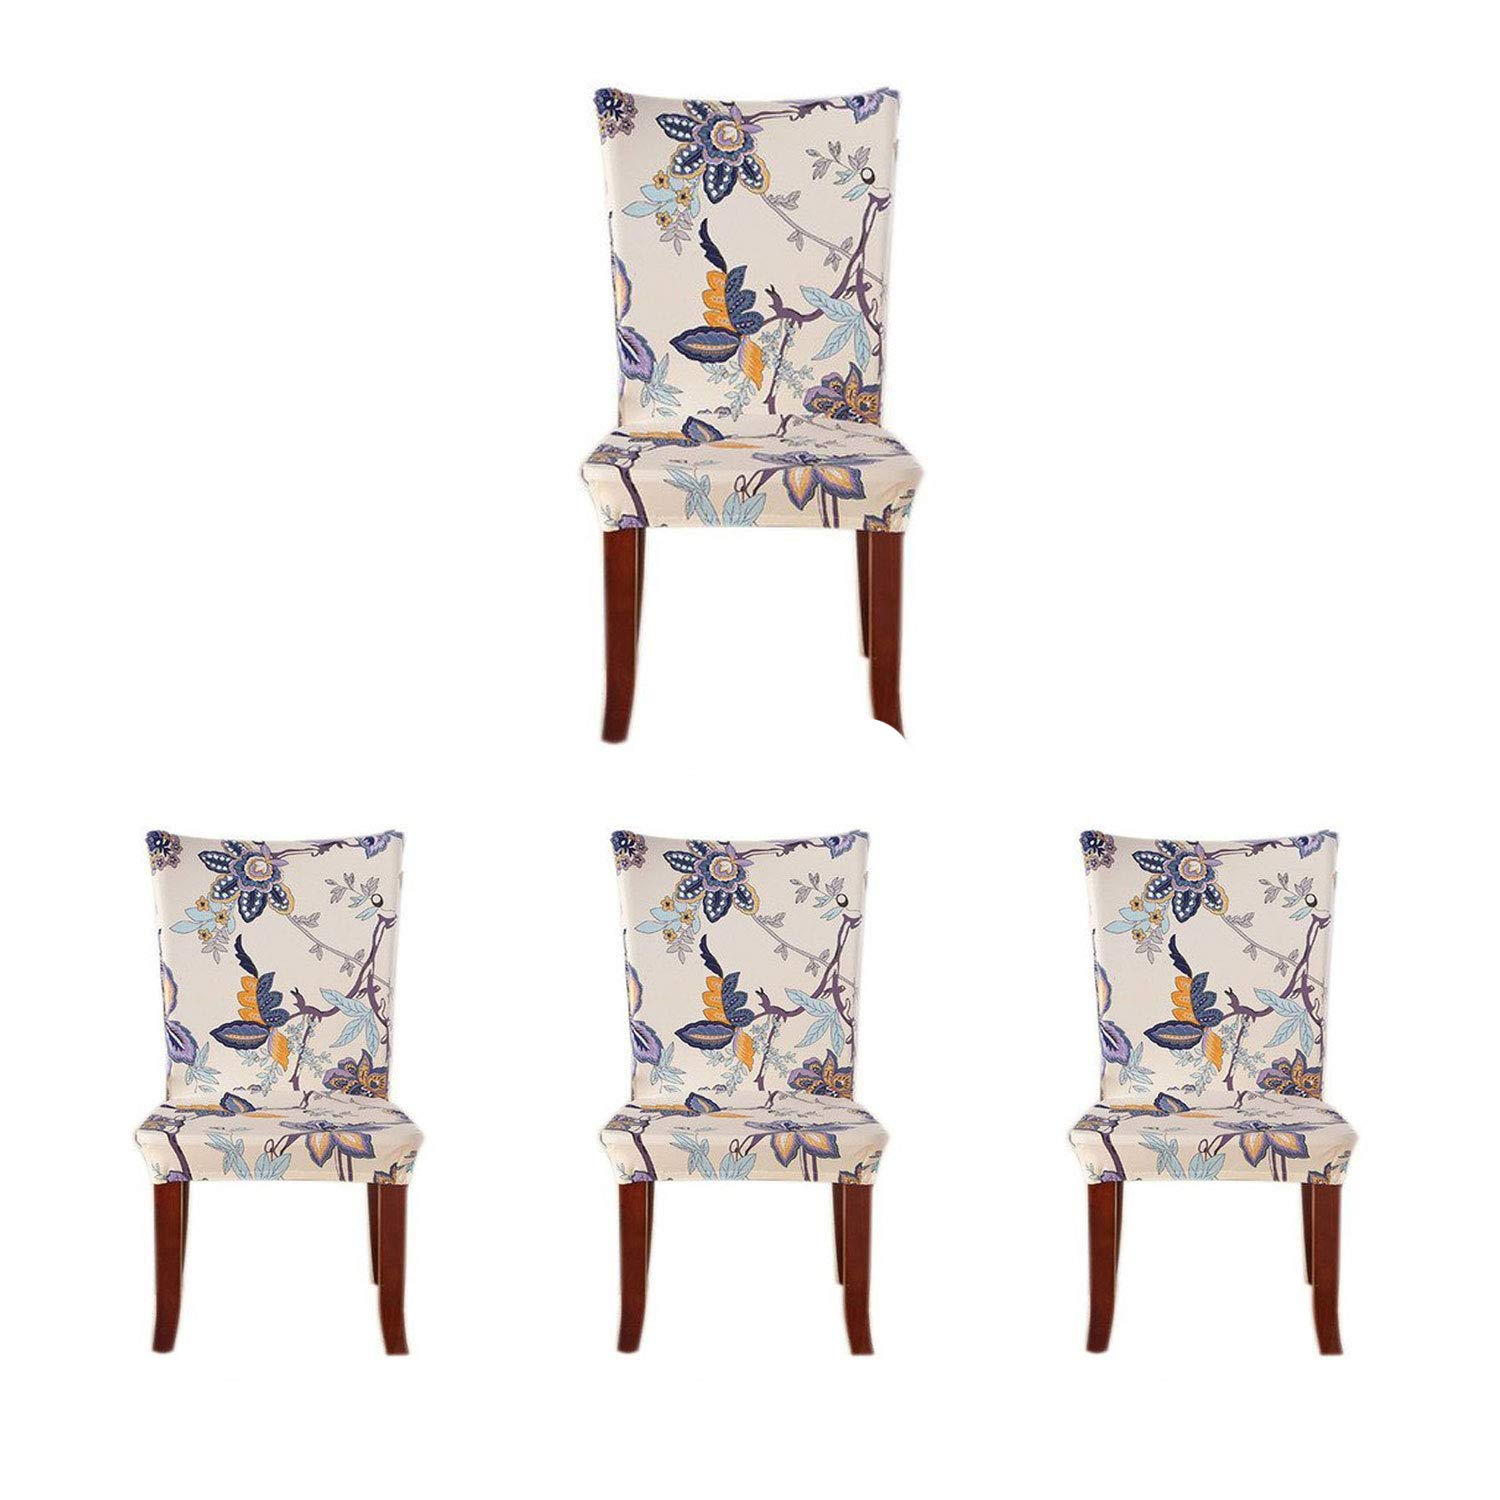 SoulFeel 4 x Soft Spandex Fit Stretch Short Dining Room Covers with Printed Pattern, Banquet Chair Seat Protector Slipcover for Home Party Hotel Wedding Ceremony (Style 26), Pack of 4, by SoulFeel